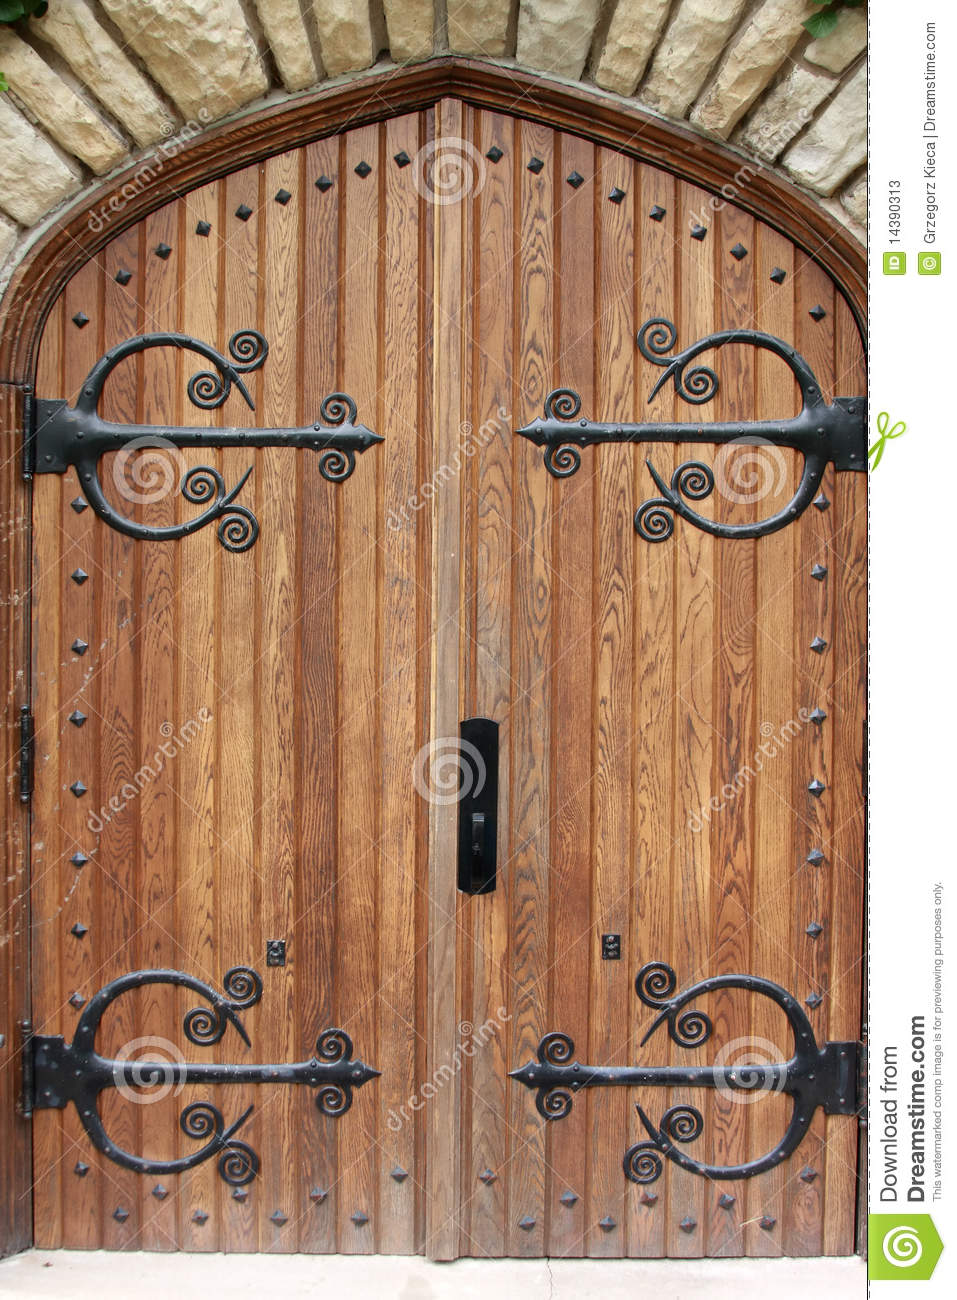 Decorative Church Door With Iron Hinges Stock Image